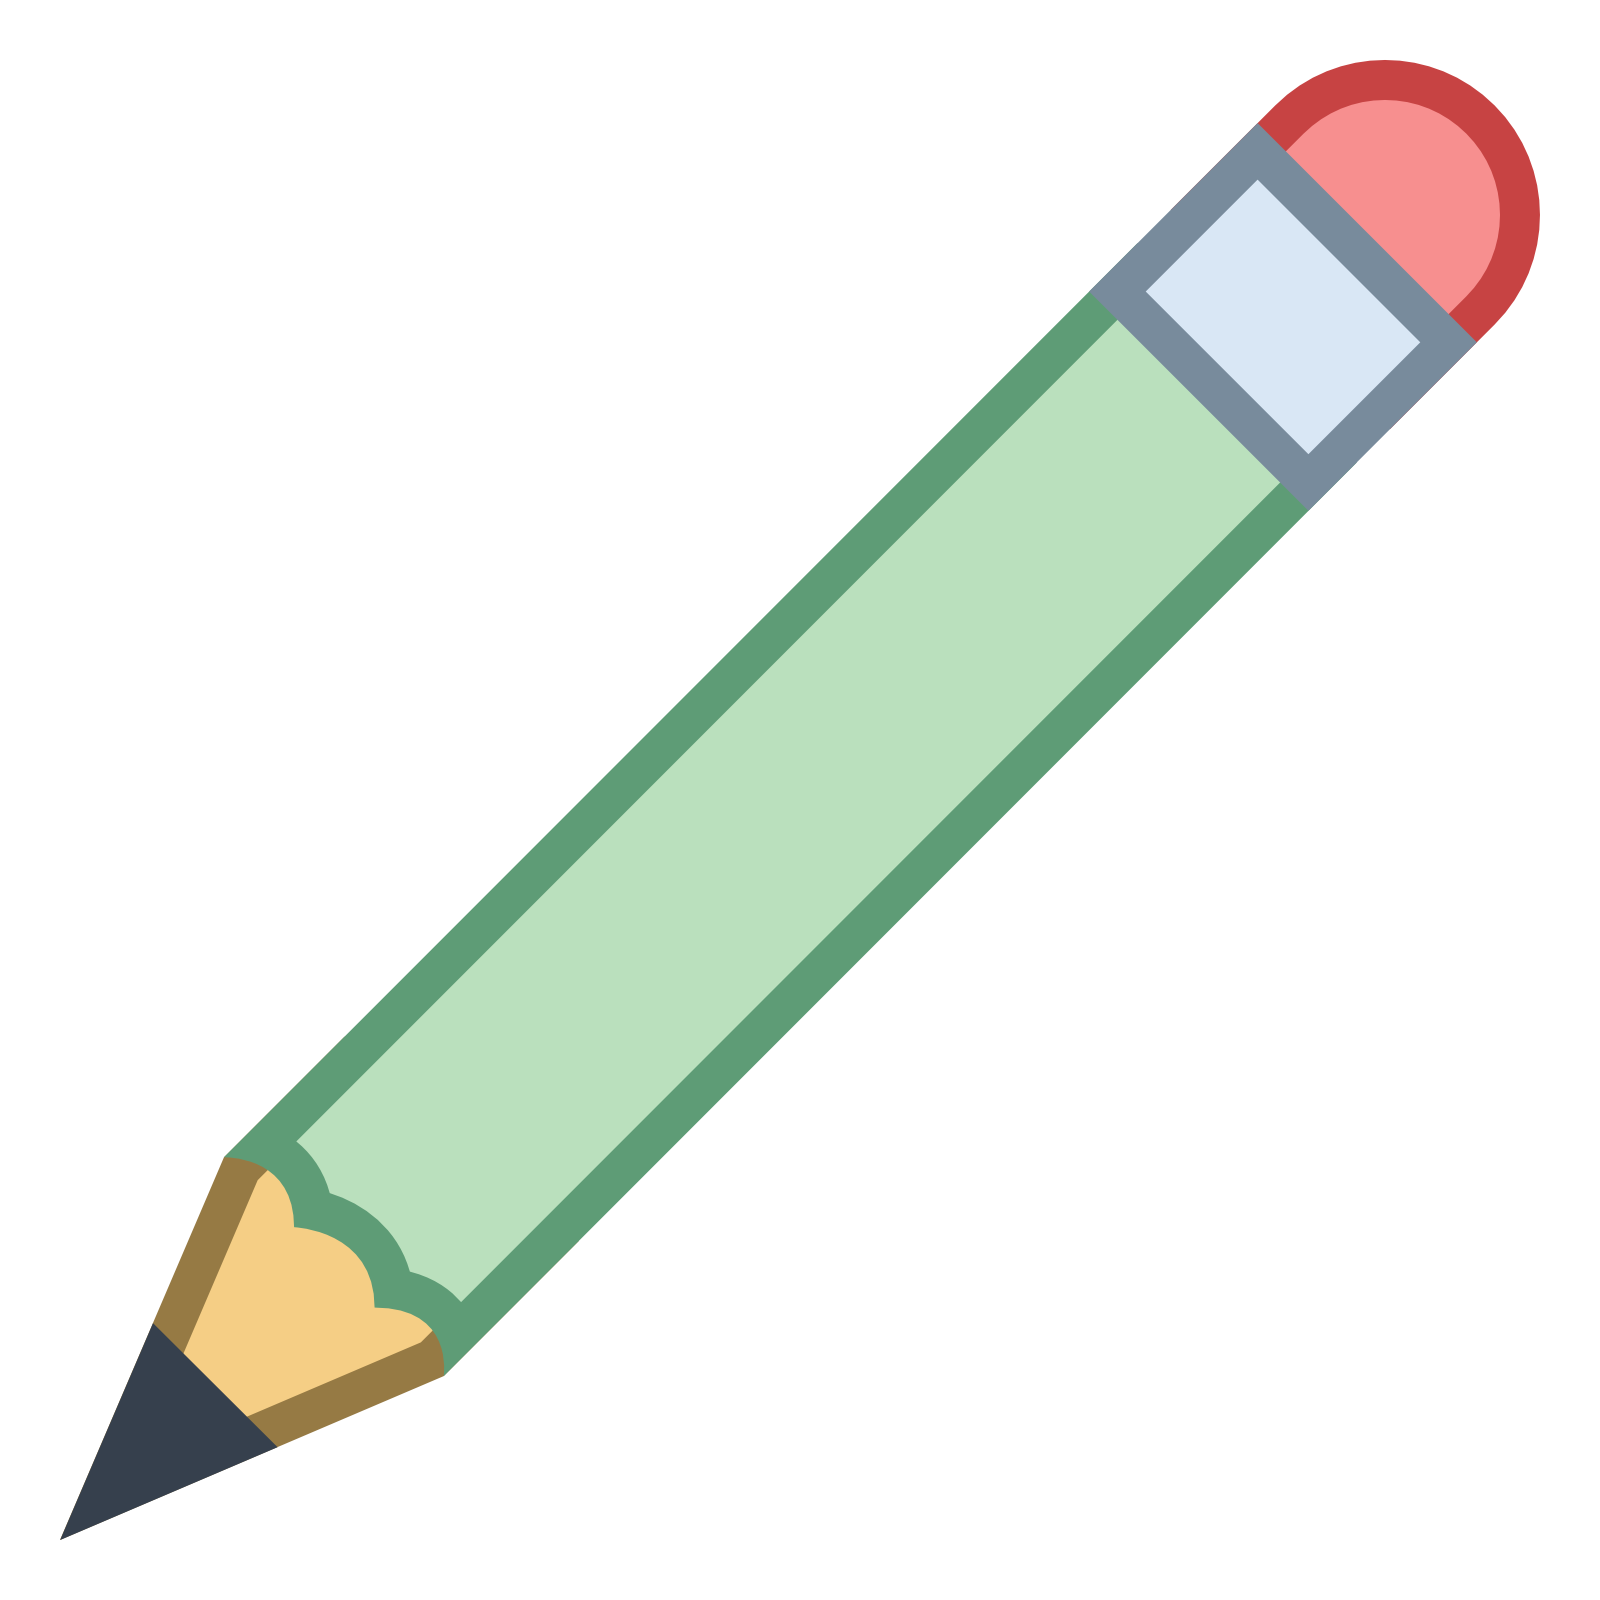 Tip Of Pencil PNG - 57083